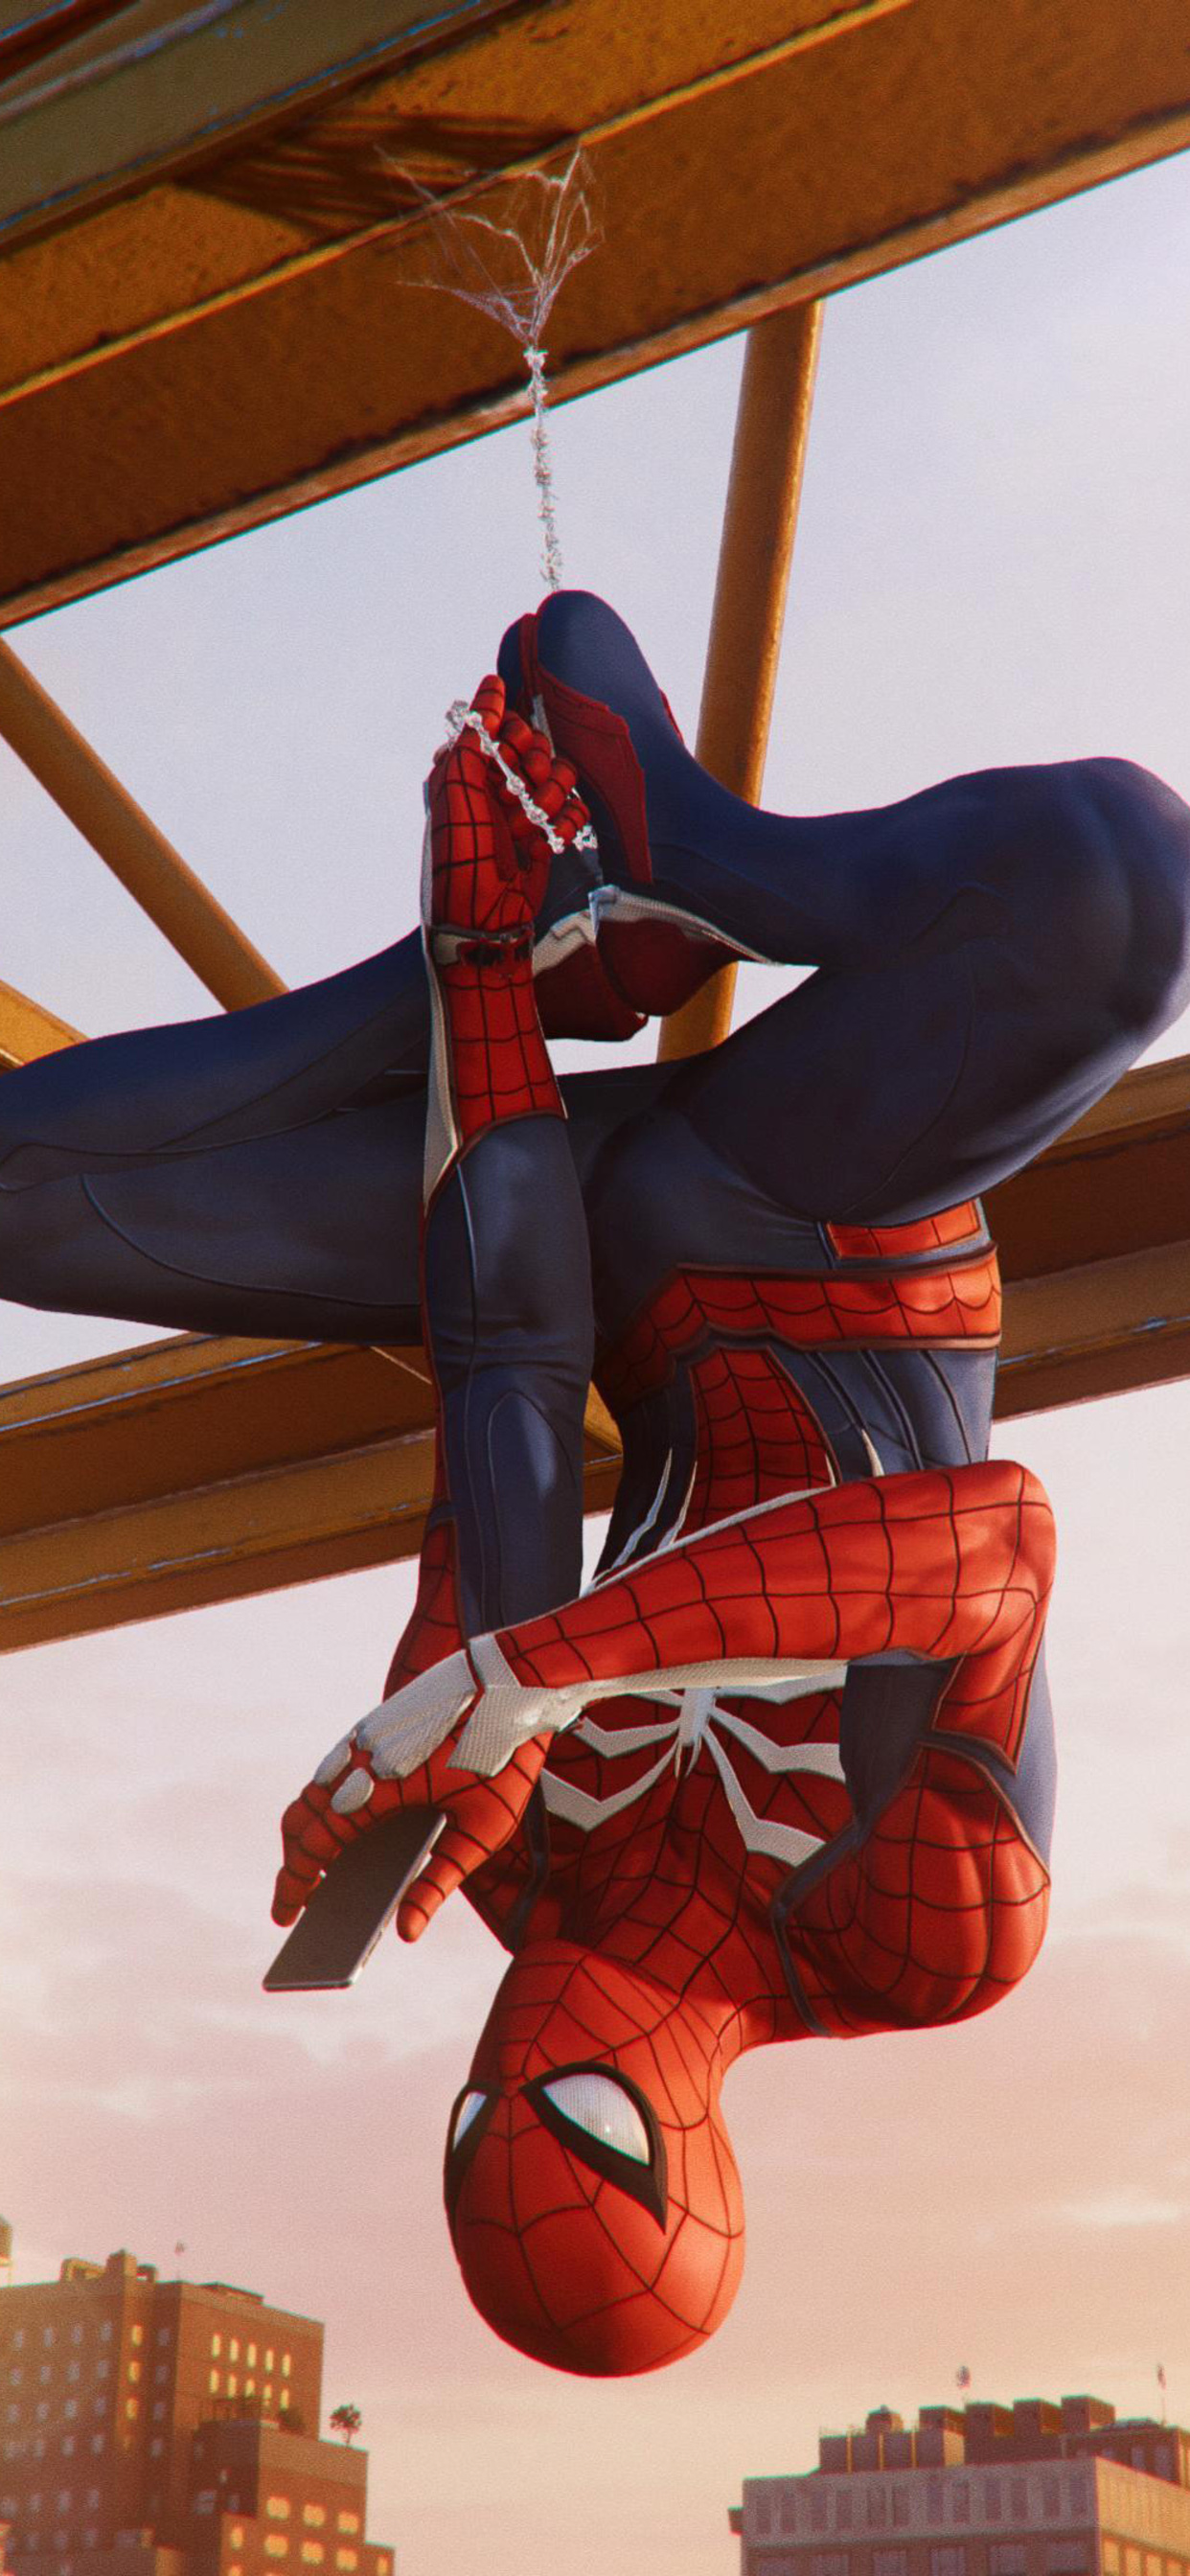 1242x2688 Spiderman Hanging Out Ps4 4k Iphone XS MAX HD 4k